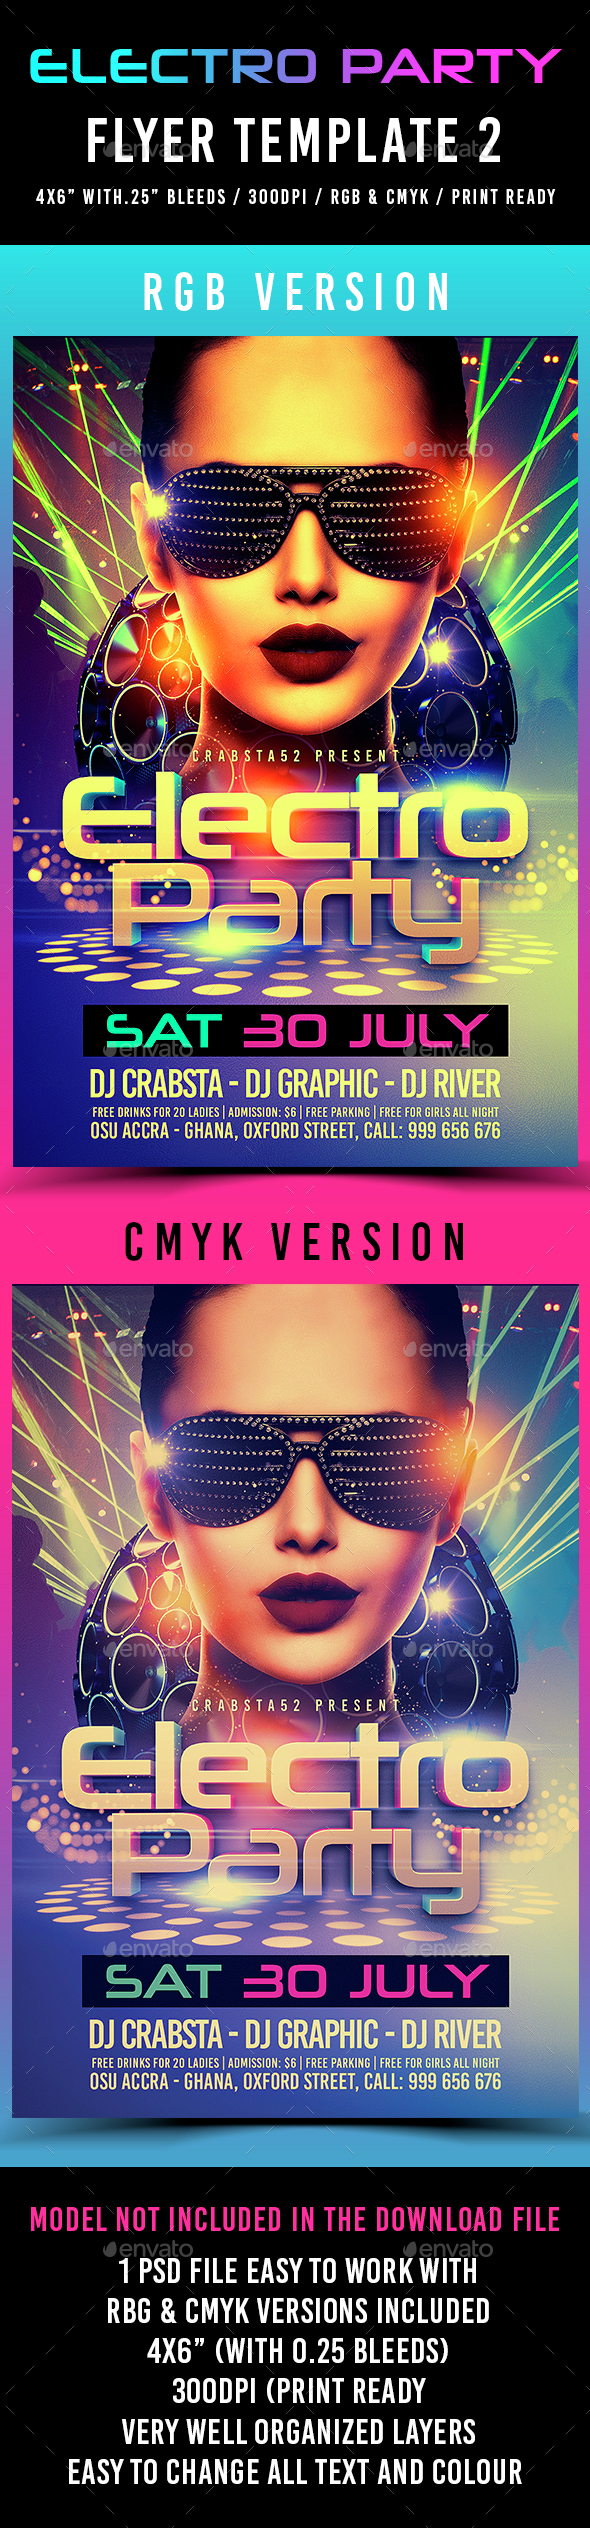 Electro Party Flyer Template 2 - Flyers Print Templates